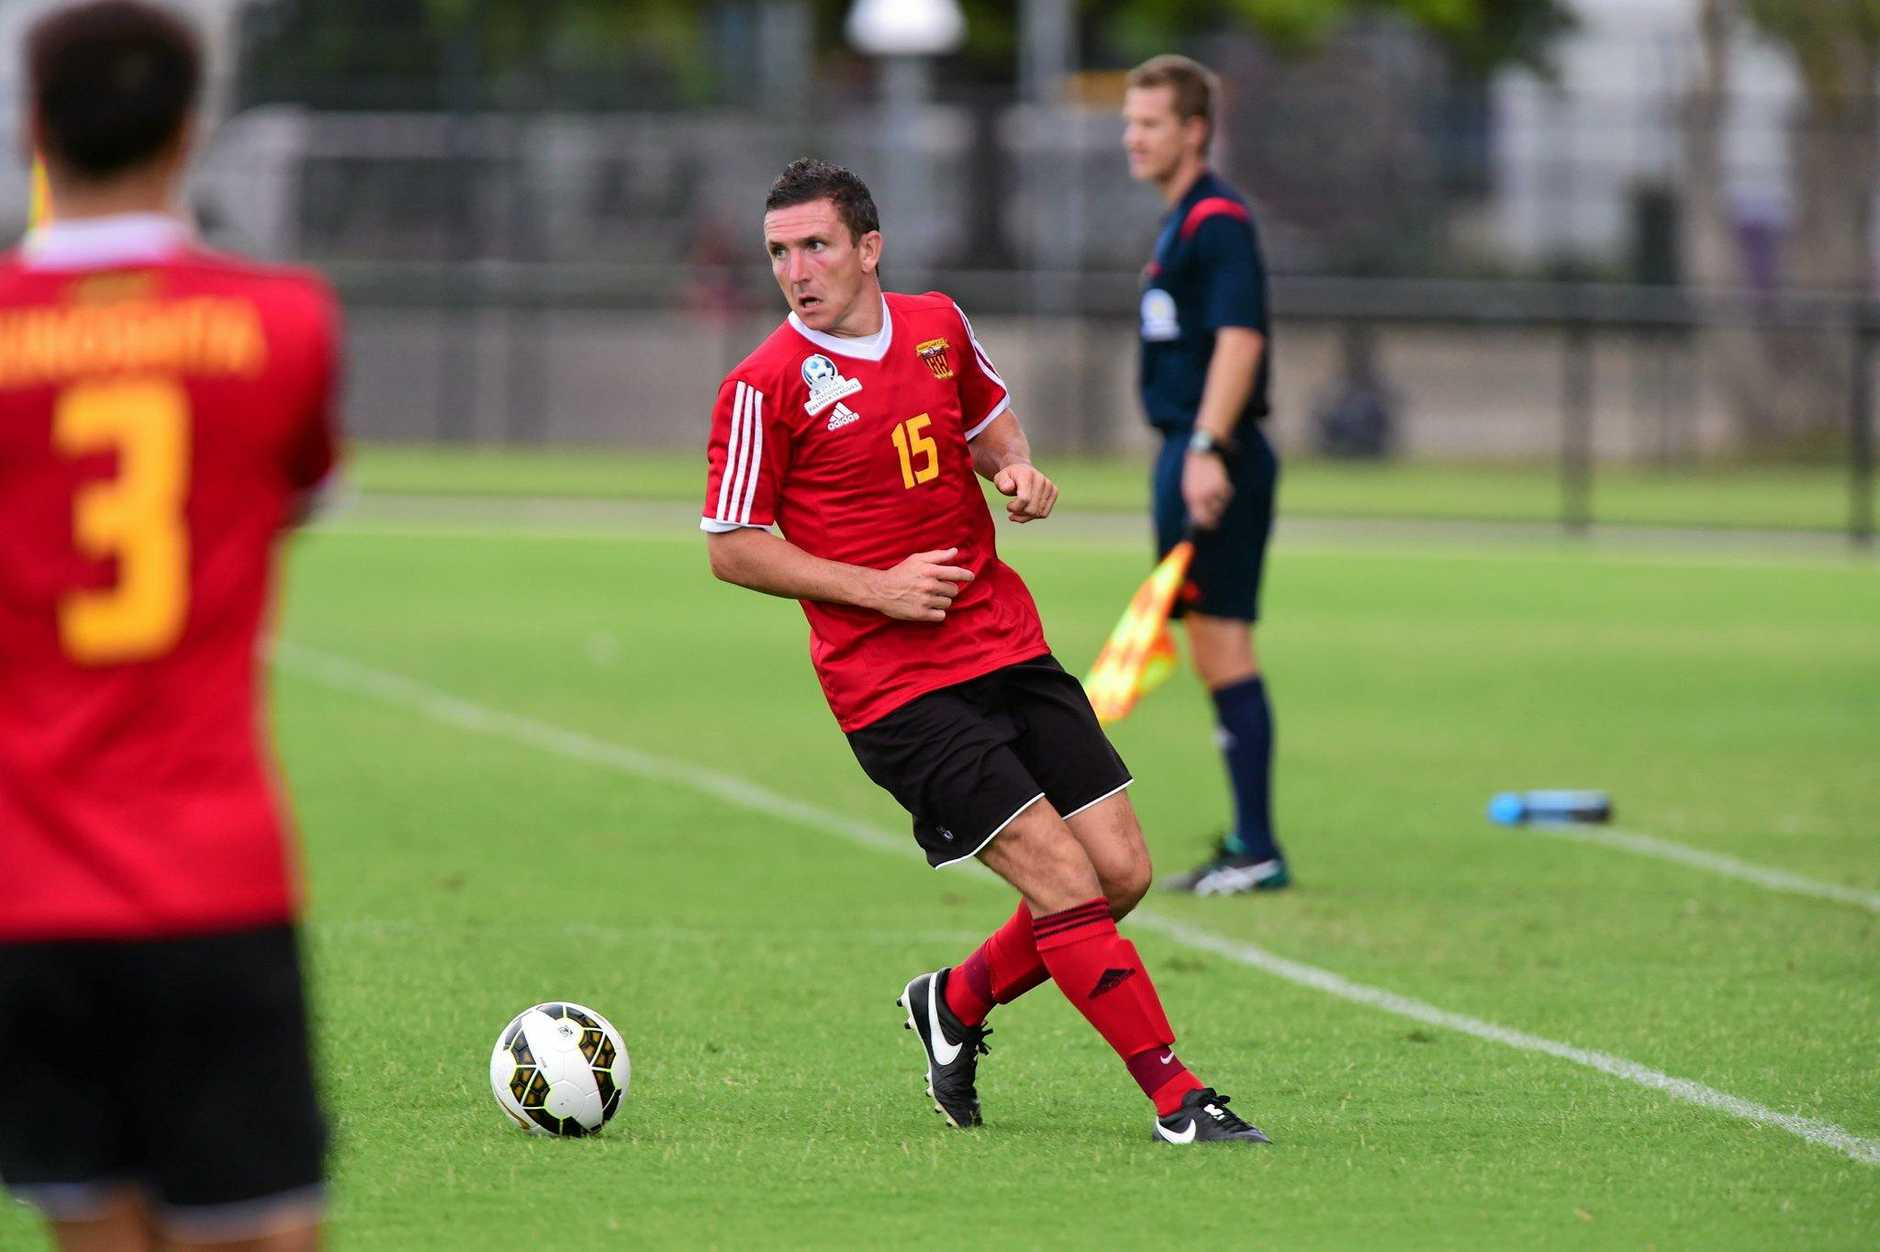 Paul Arnison pictured last year in action for the Sunshine Coast Fire against Palm Beach at Sunshine Coast Stadium.Photo: Iain Curry / Sunshine Coast Daily